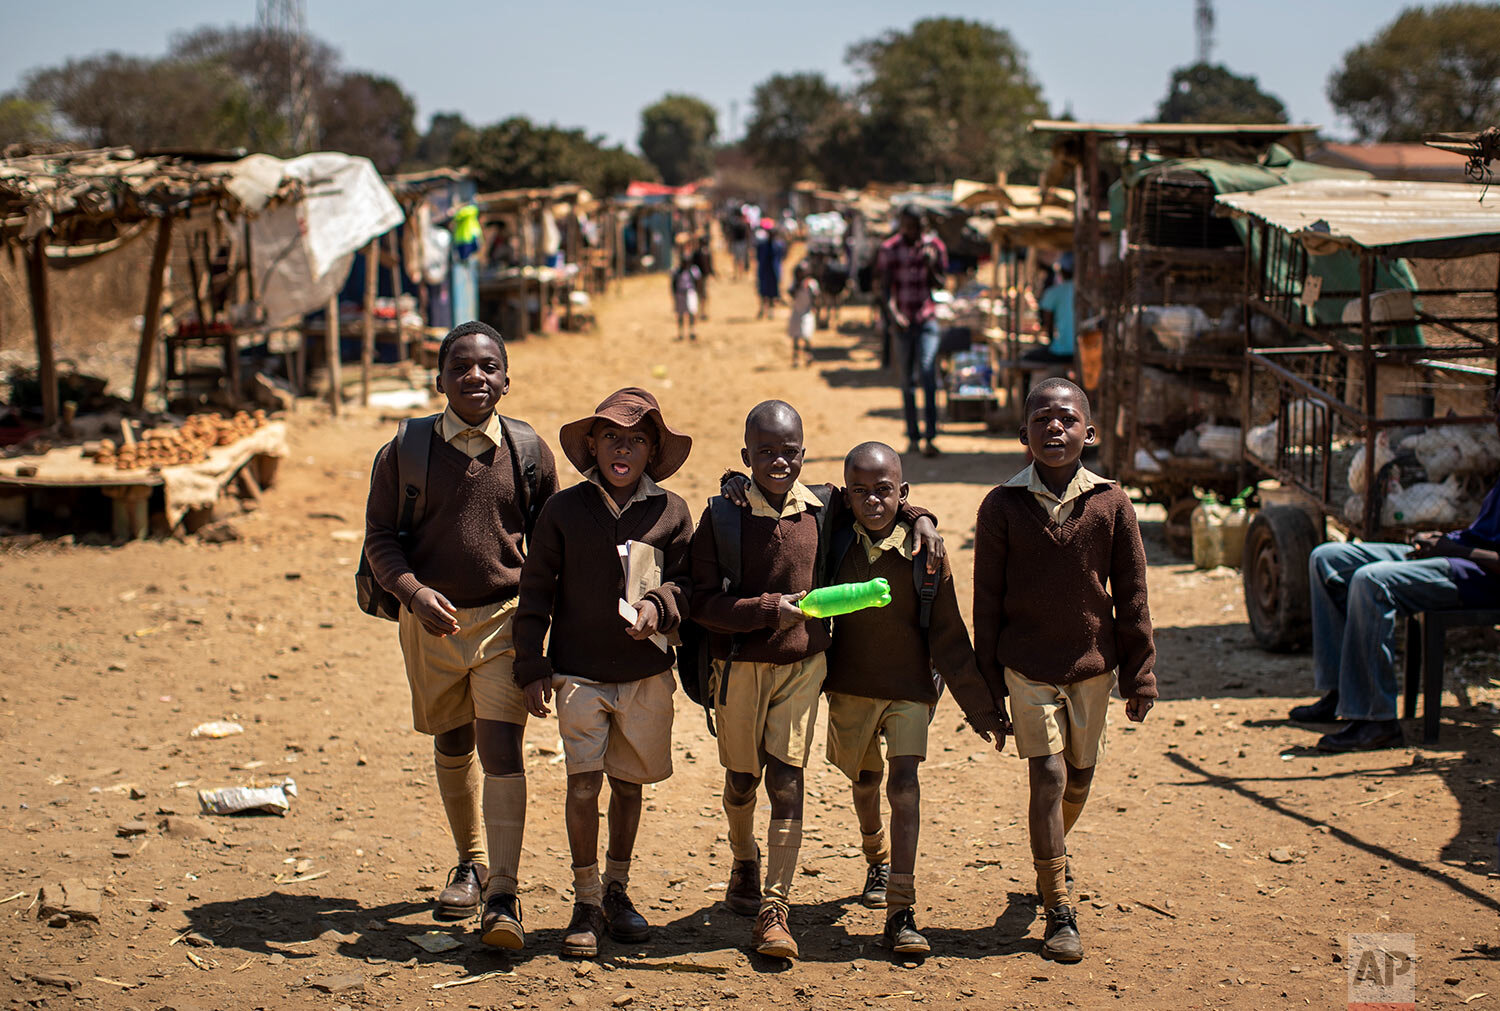 Schoolboys walk back home on the first day of the school term, in Kuwadzana, on the outskirts of the capital Harare, in Zimbabwe, Sept. 10, 2019. (AP Photo/Ben Curtis)